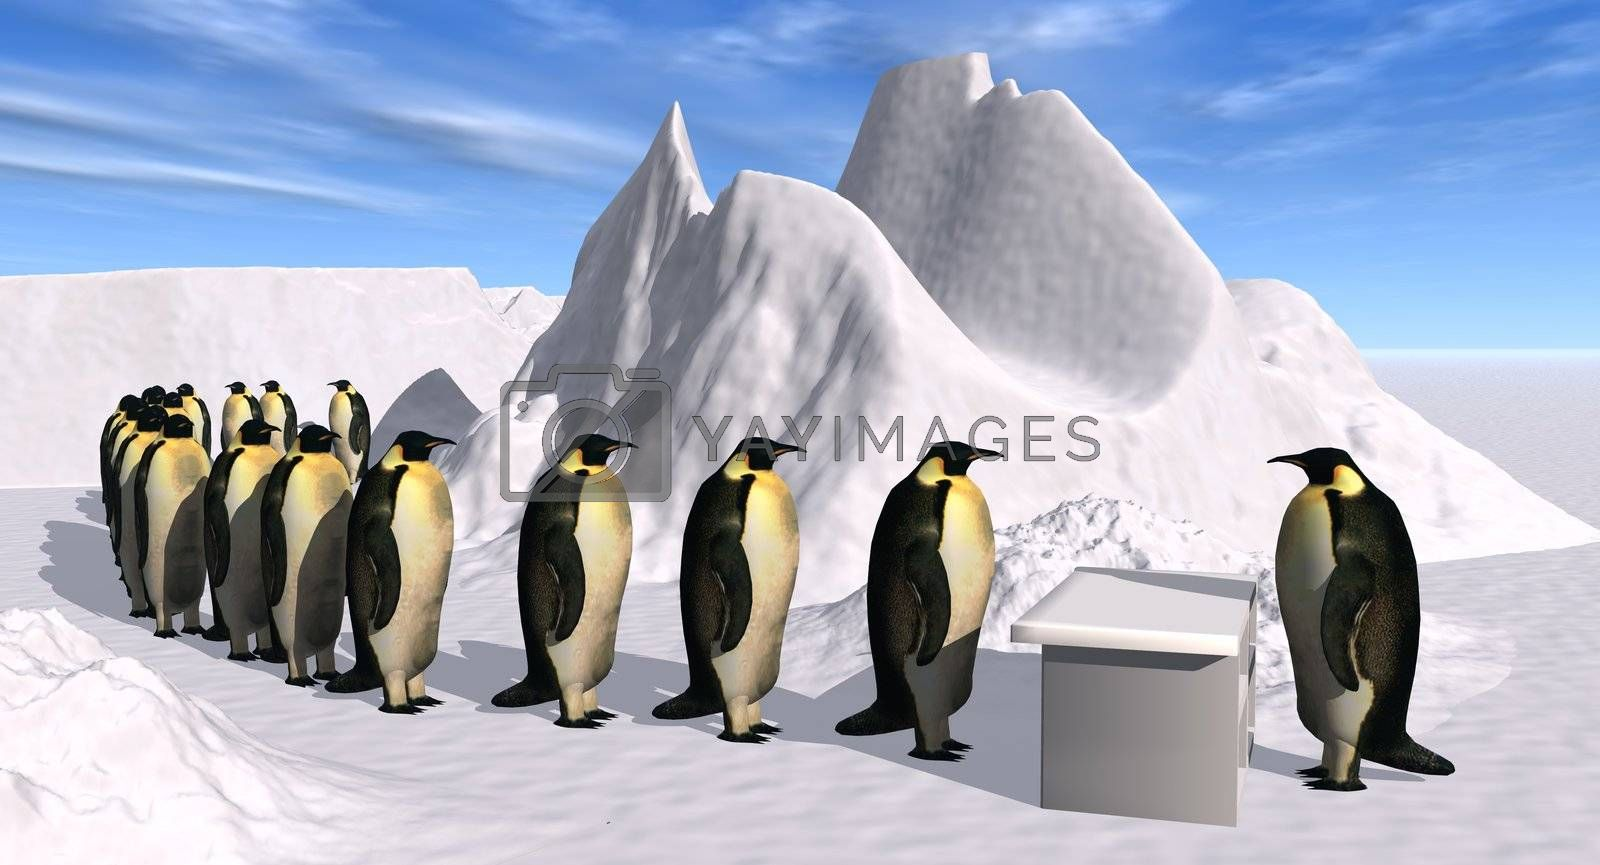 a 3D rendering showing the complaint department of the penguin company